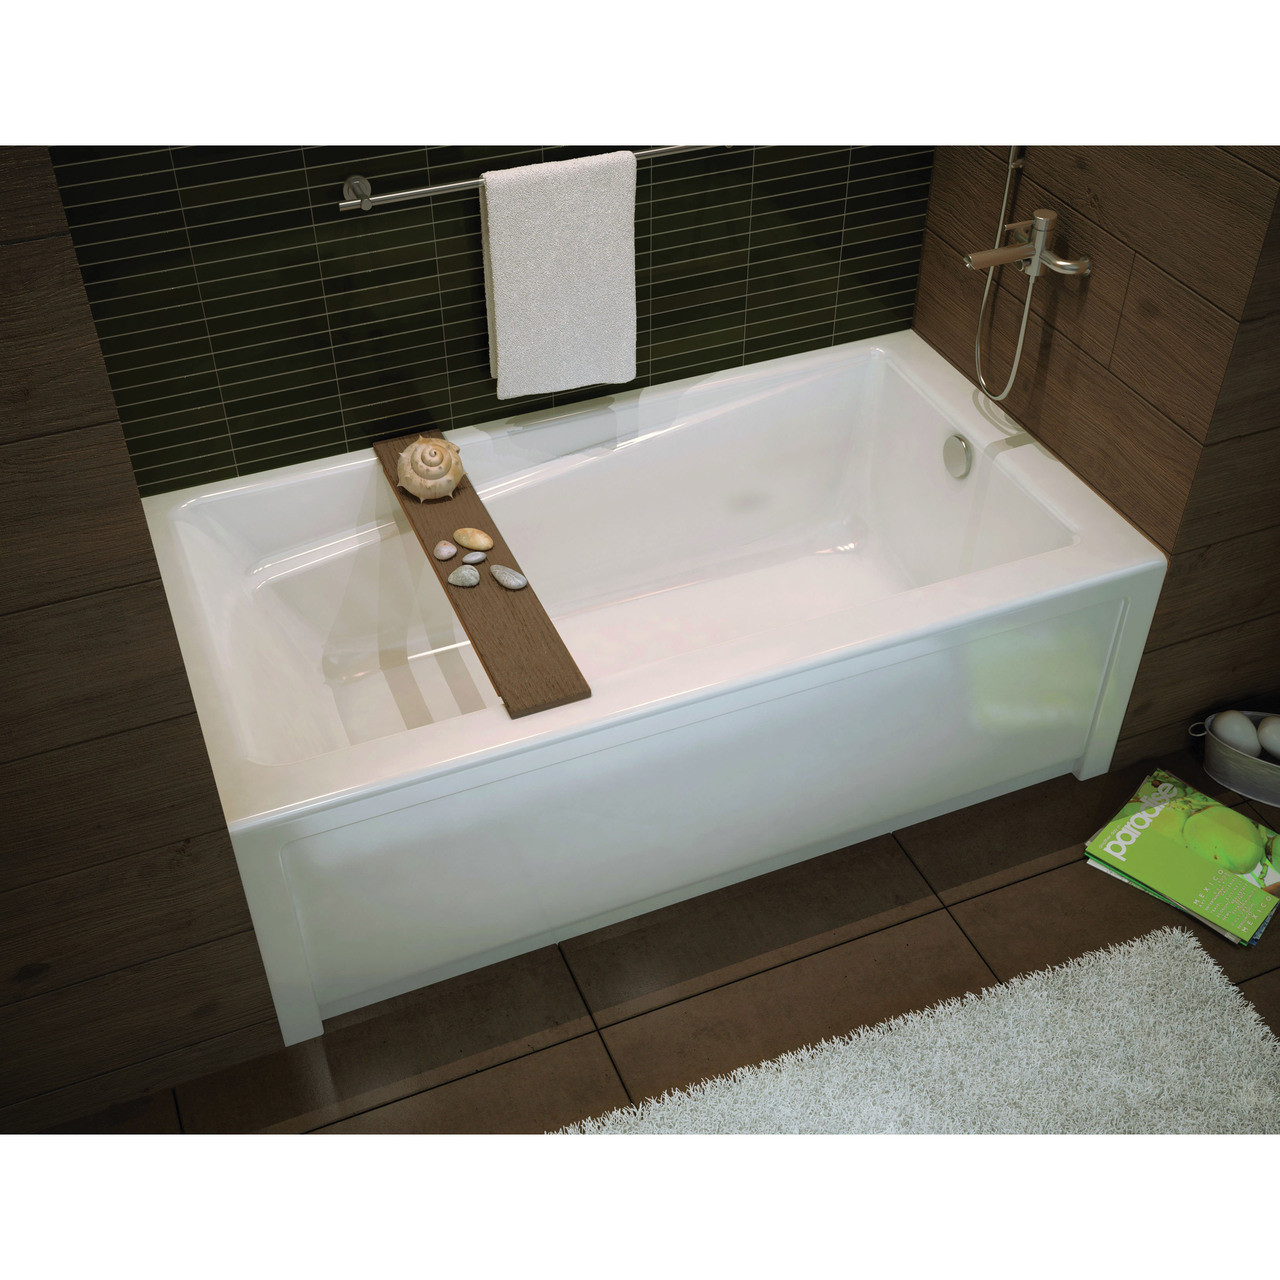 Maax bath exhibit 6030 ifs afr with professional material for Tub materials